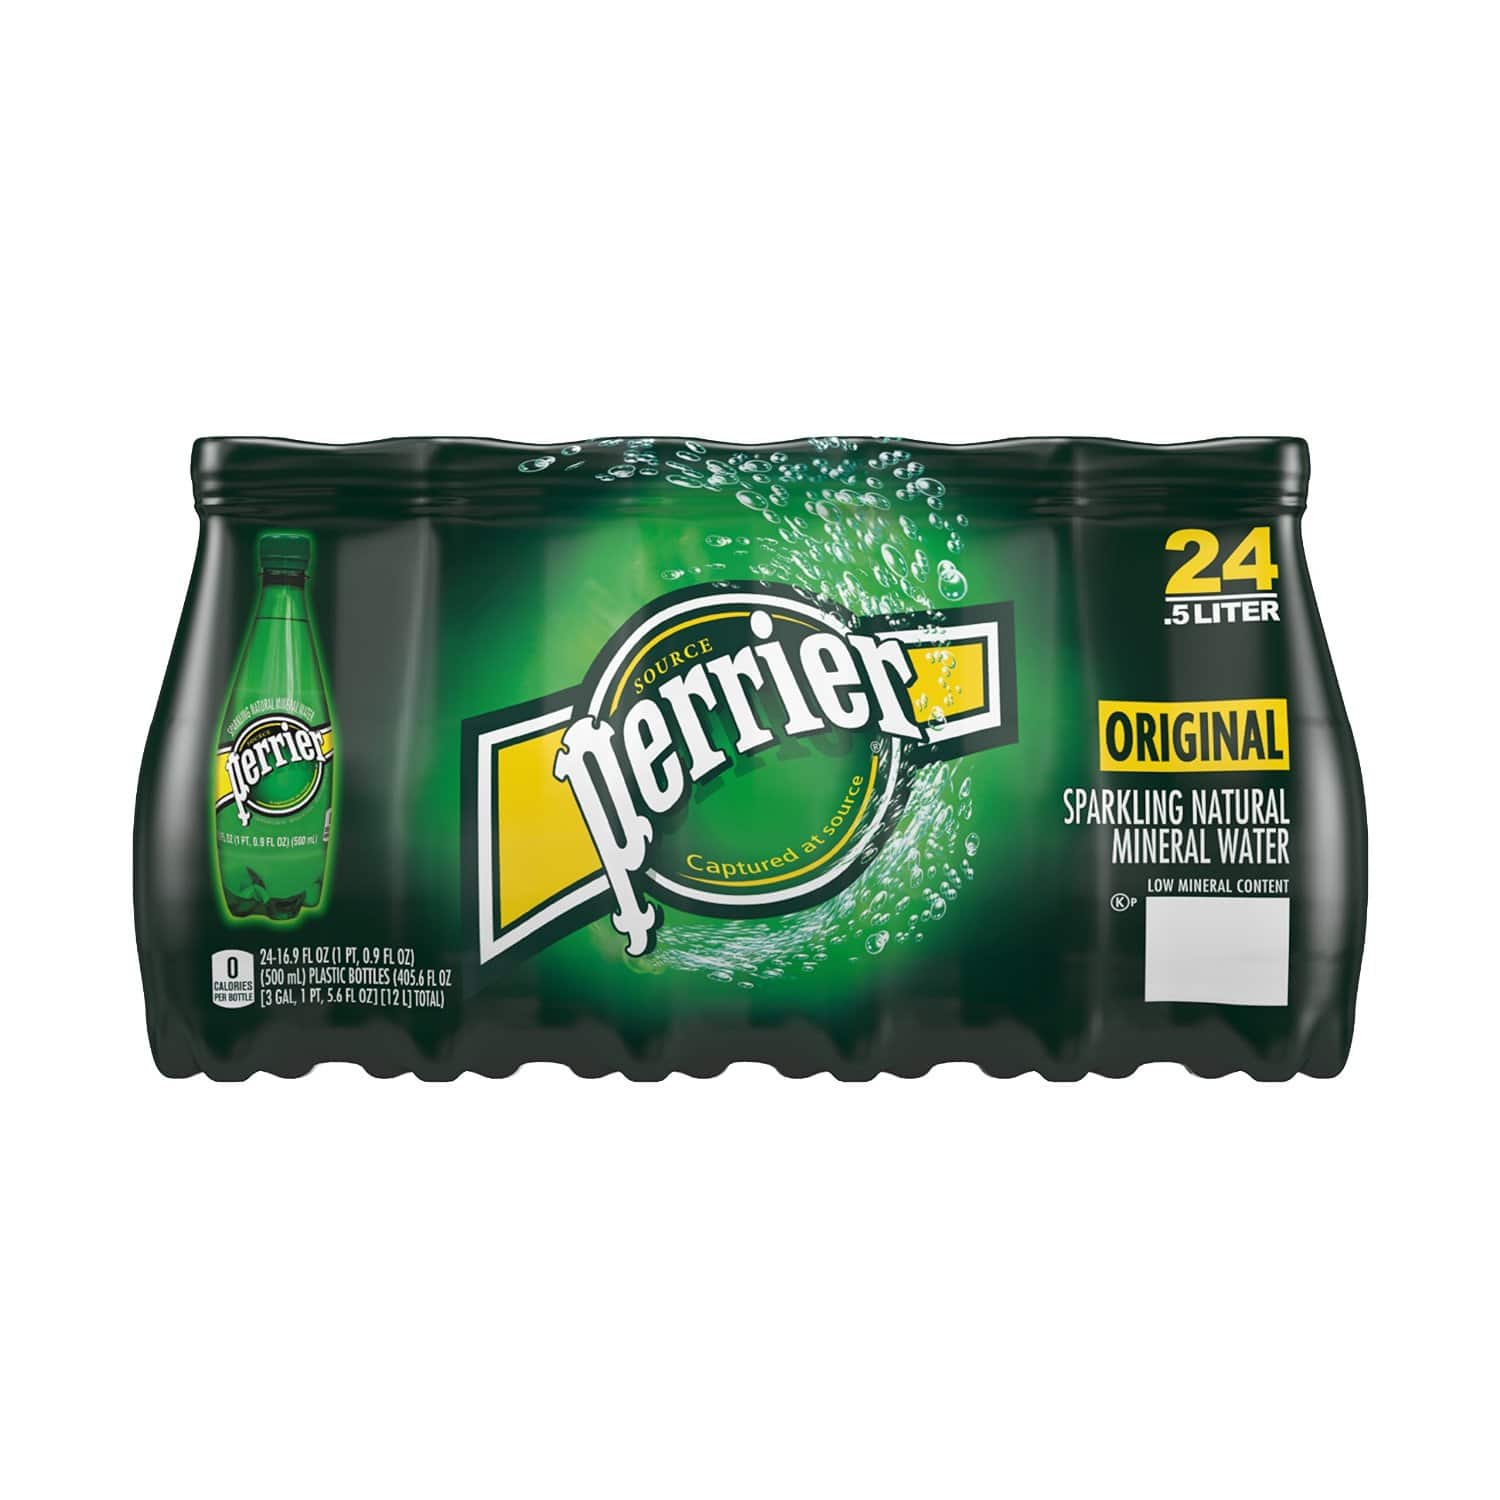 Perrier Sparkling Natural Mineral Water, 16.9-ounce plastic bottles (Pack of 24) - $11.94 w/coupon and S&S, (As Low As - $10.35)